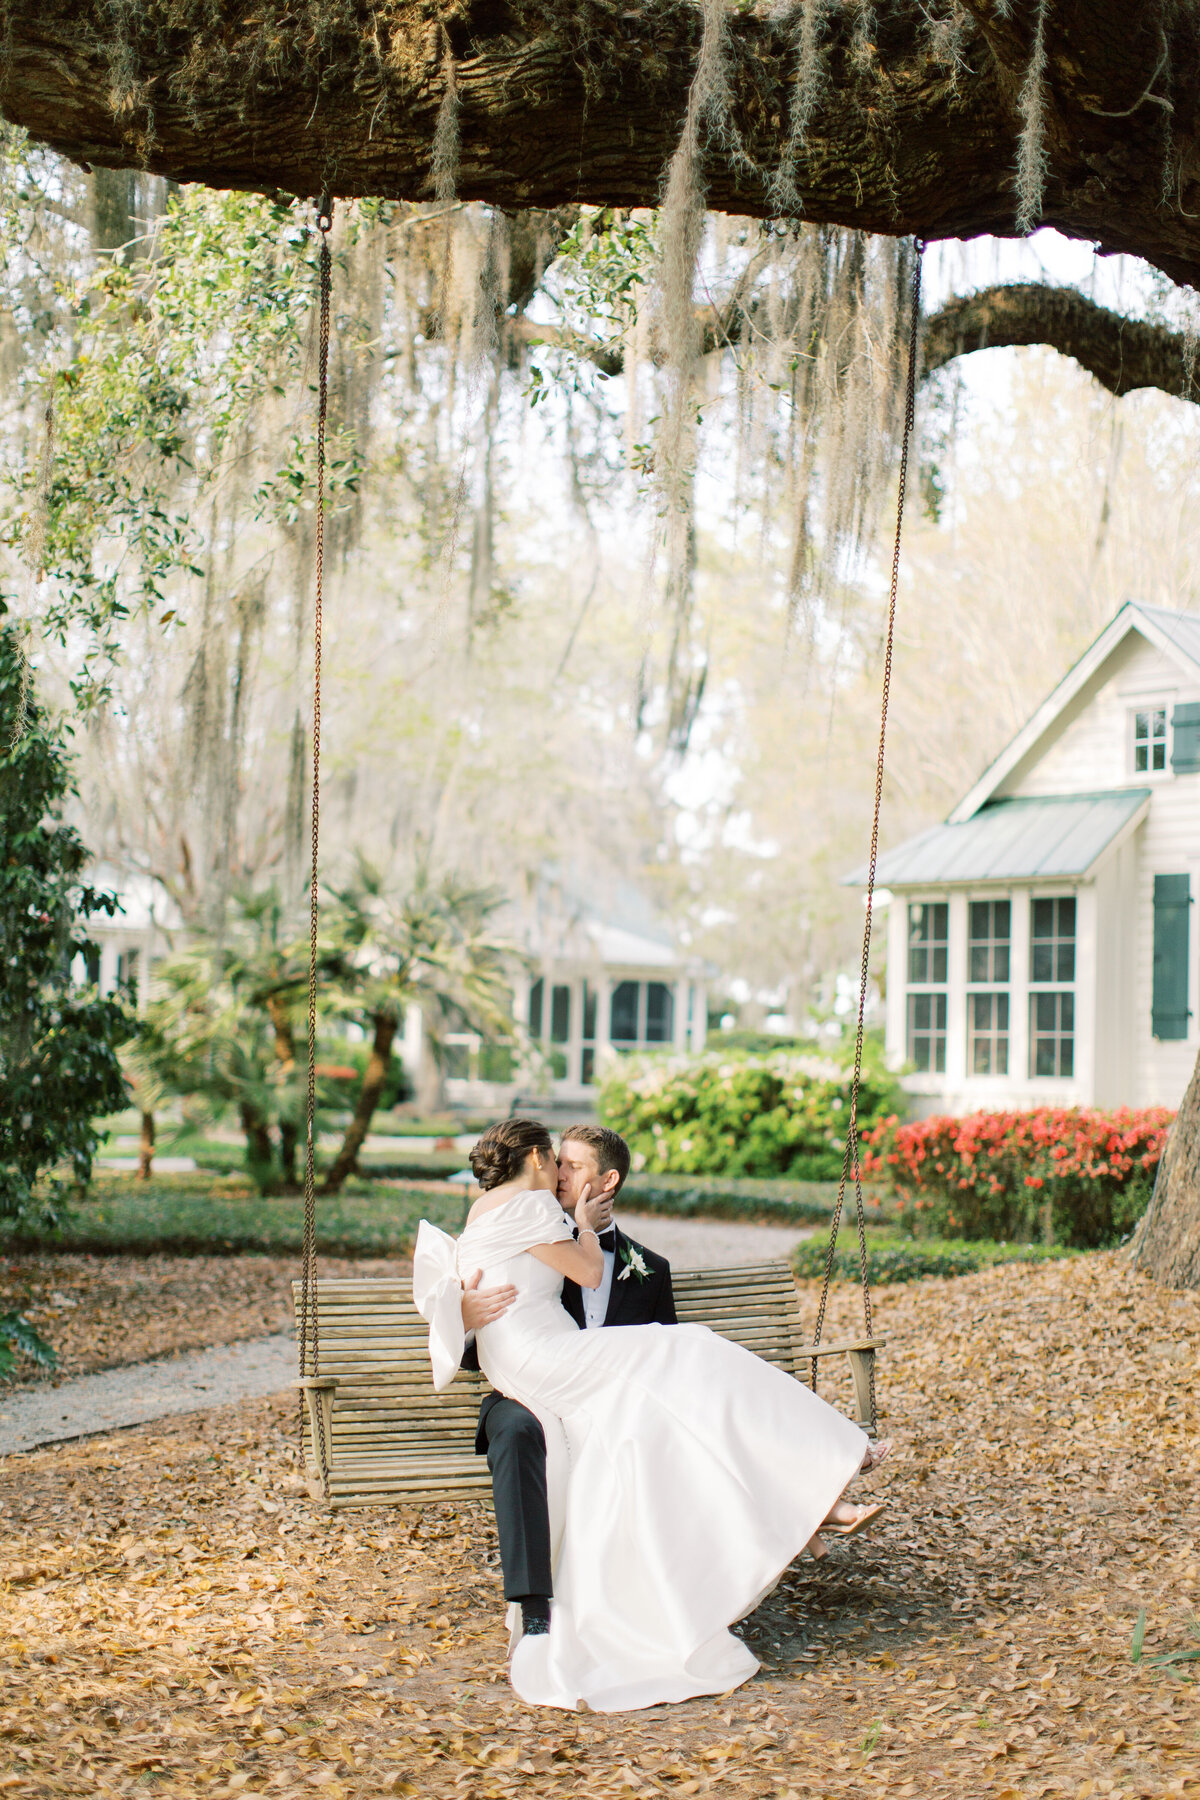 Powell_Oldfield_River_Club_Bluffton_South_Carolina_Beaufort_Savannah_Wedding_Jacksonville_Florida_Devon_Donnahoo_Photography_0816